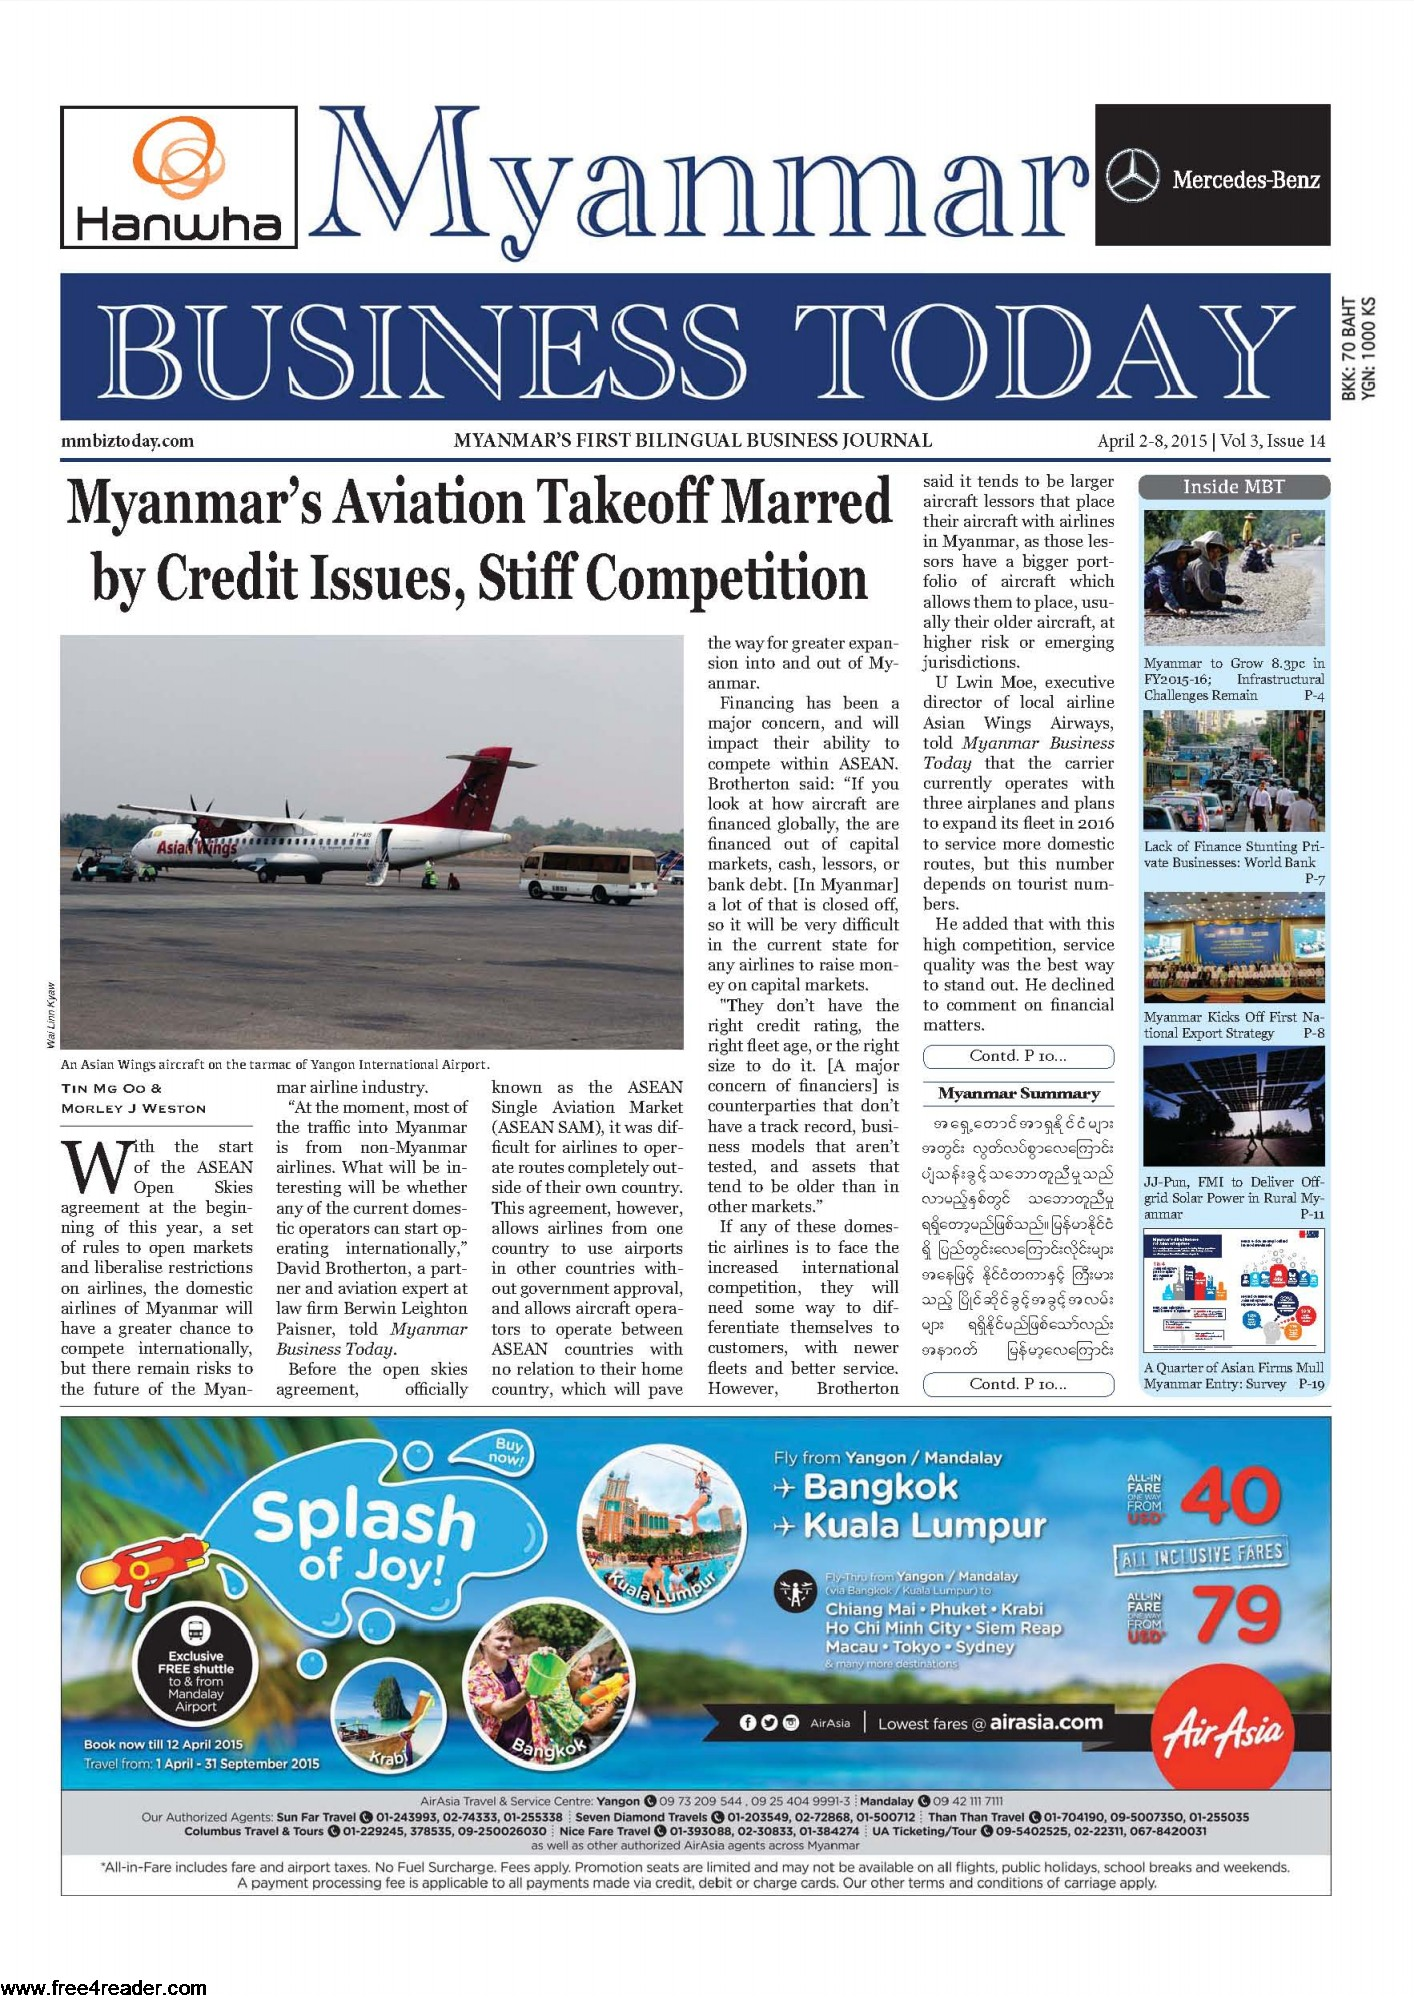 Myanmar Business Today Journal Journal